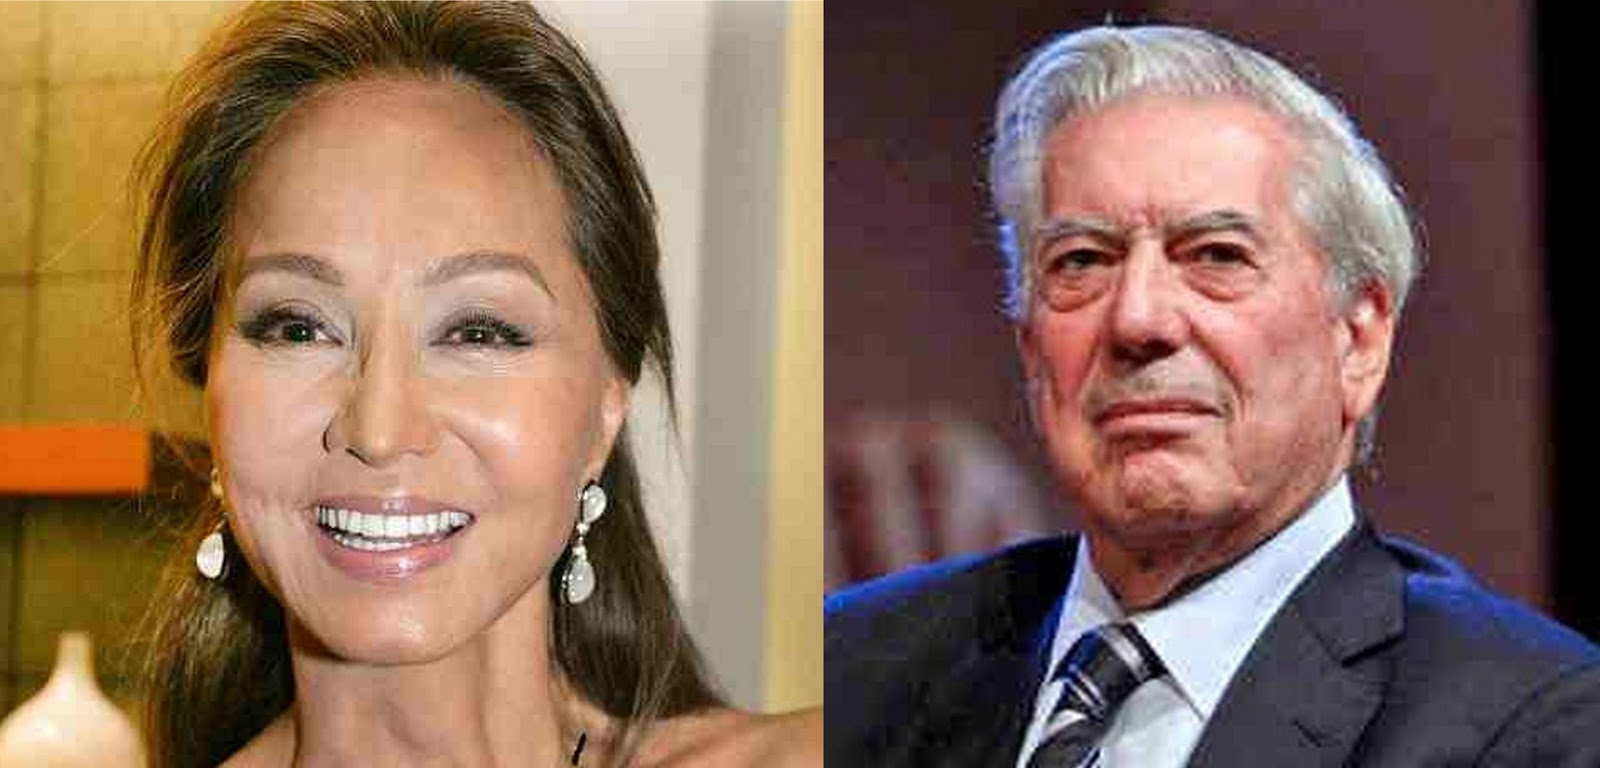 julio iglesias and enrique relationship with